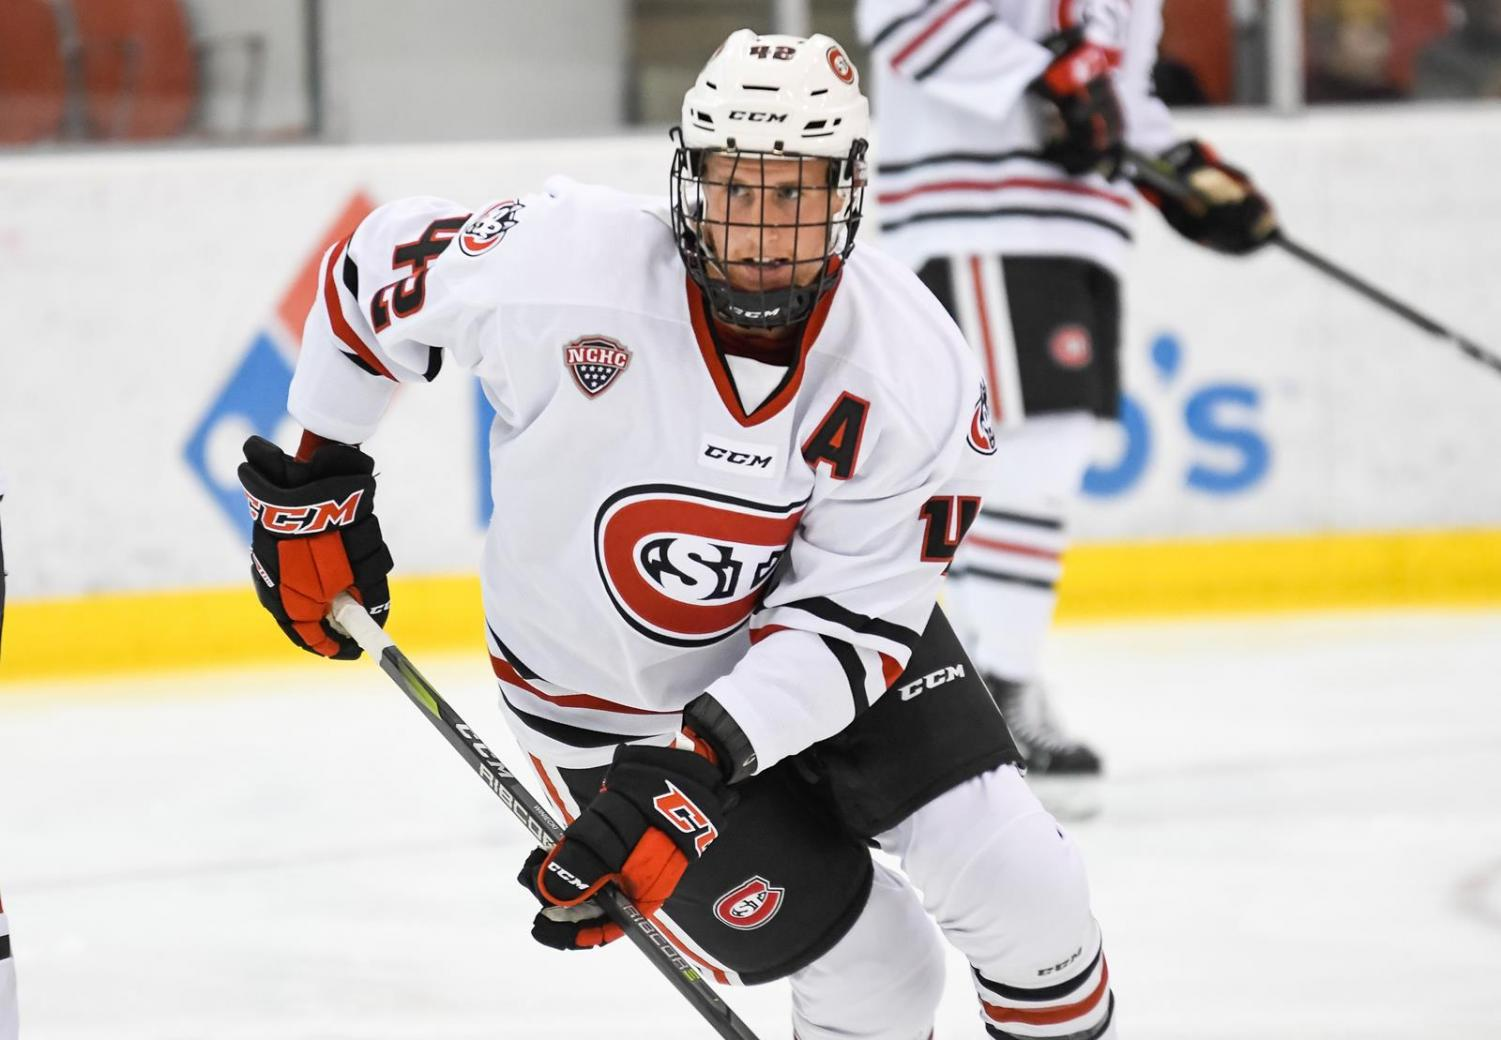 St. Cloud State's hockey team has been on top of the rankings for most of the year.